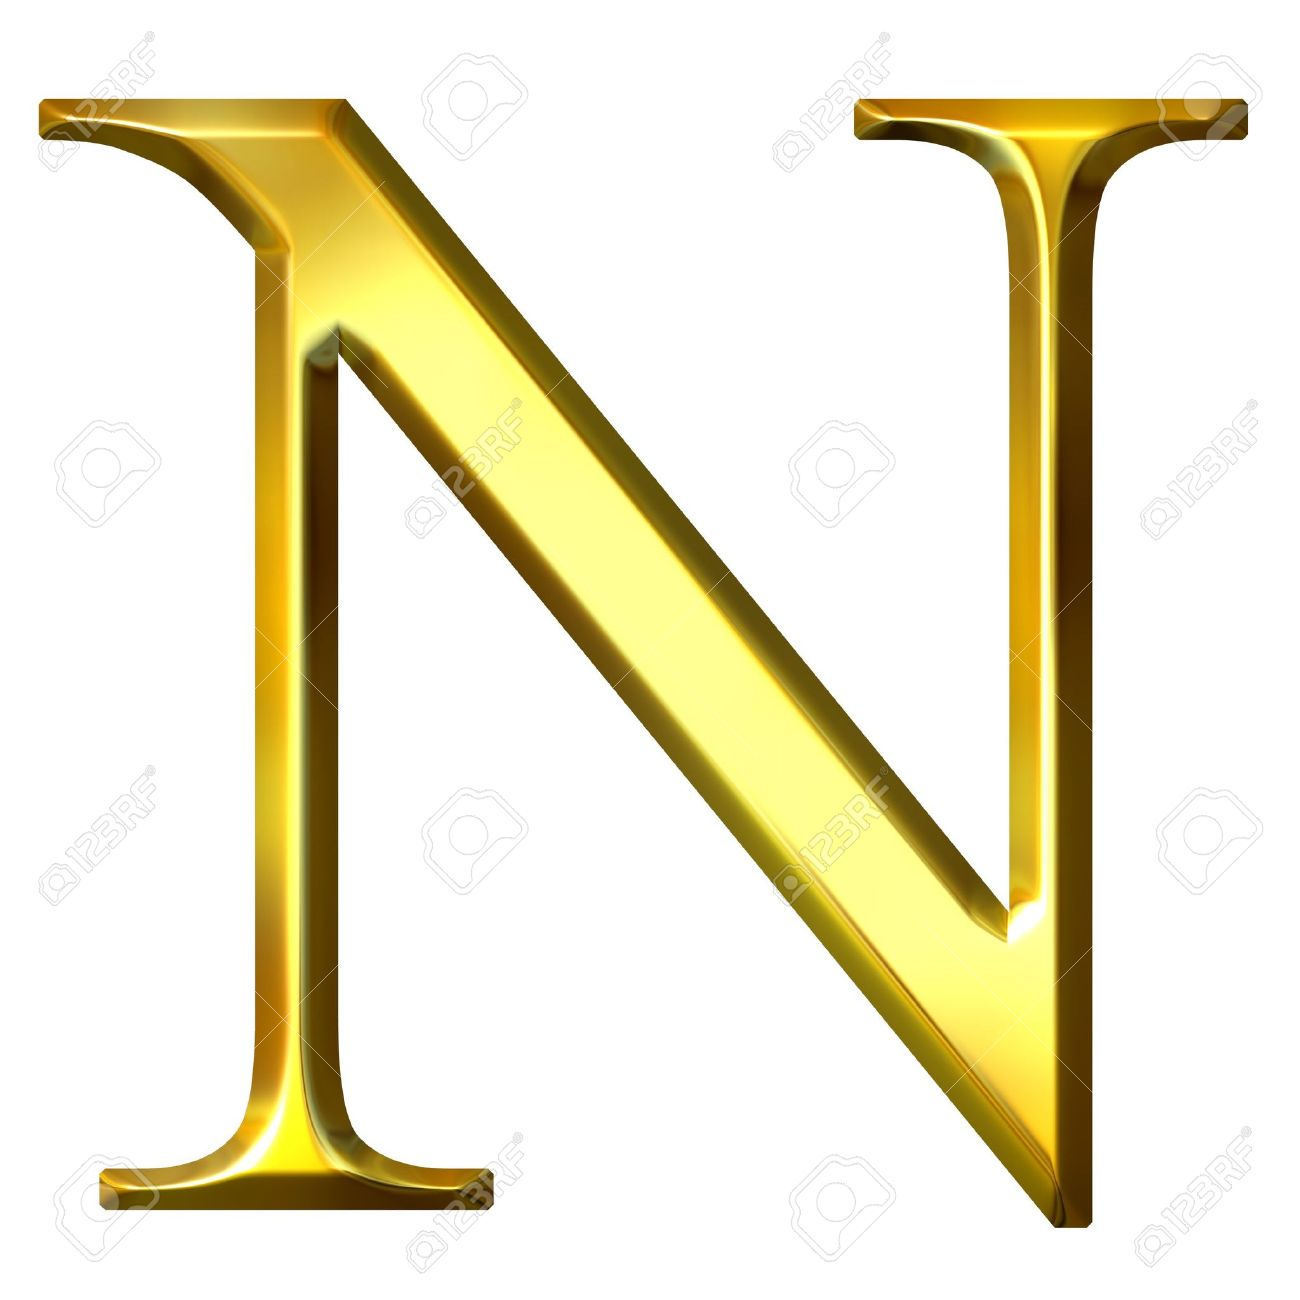 3d golden greek letter ny stock photo 4684619